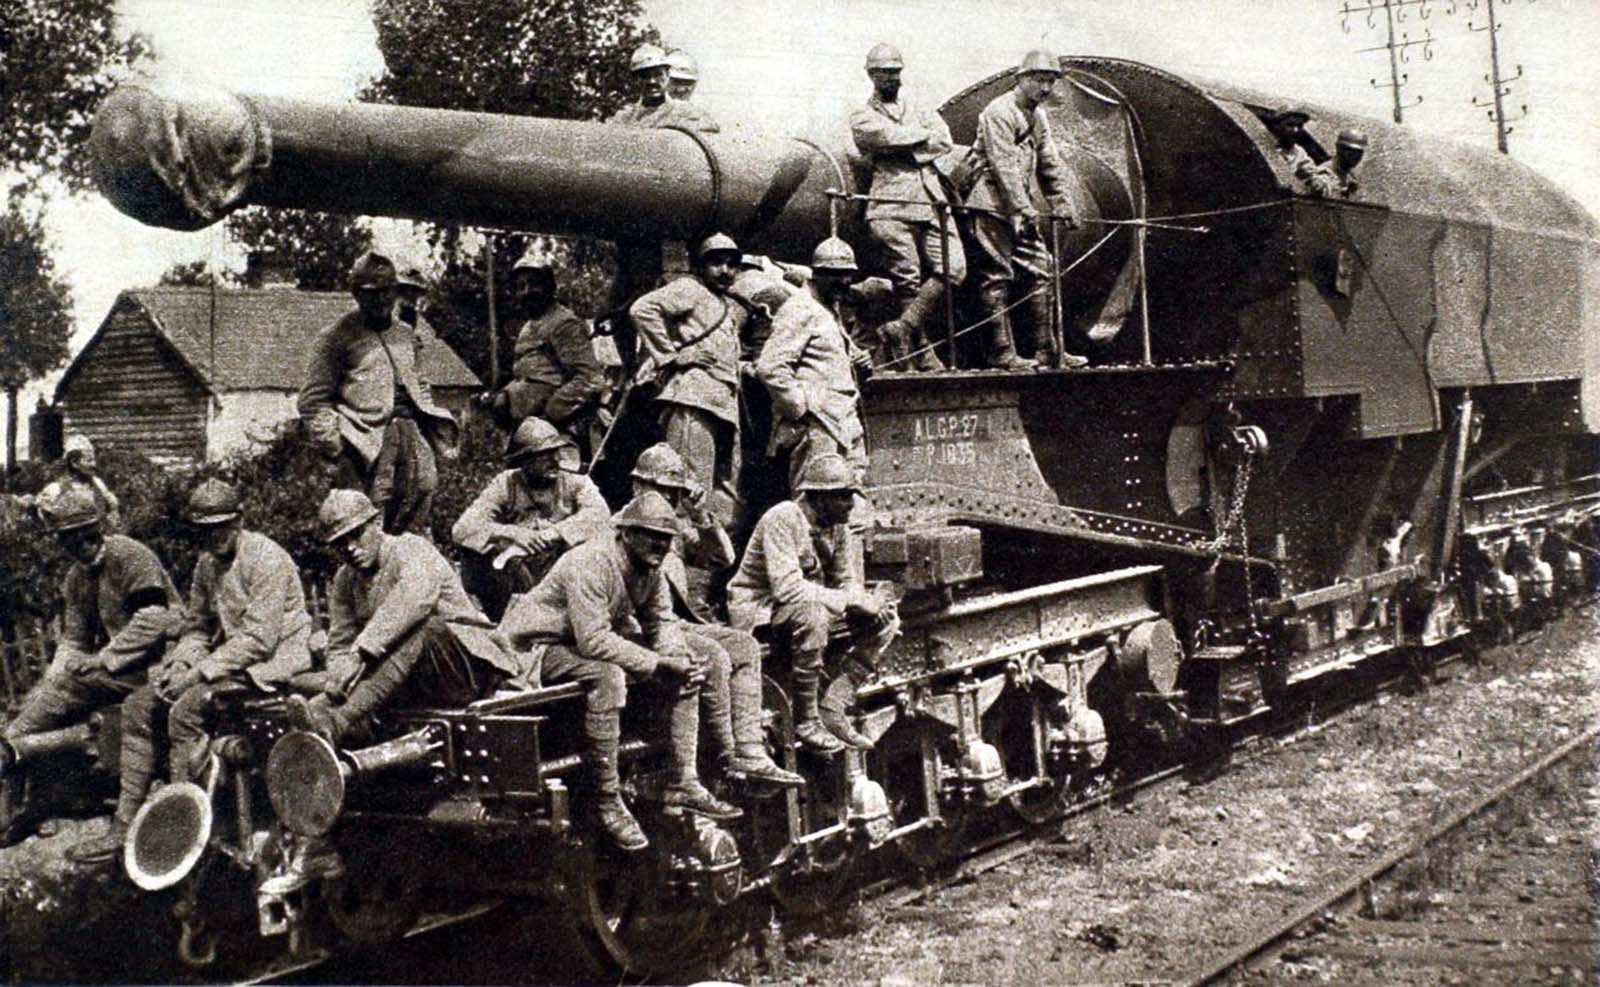 A 274-millimeter railway gun used in France in World War I. 1916.